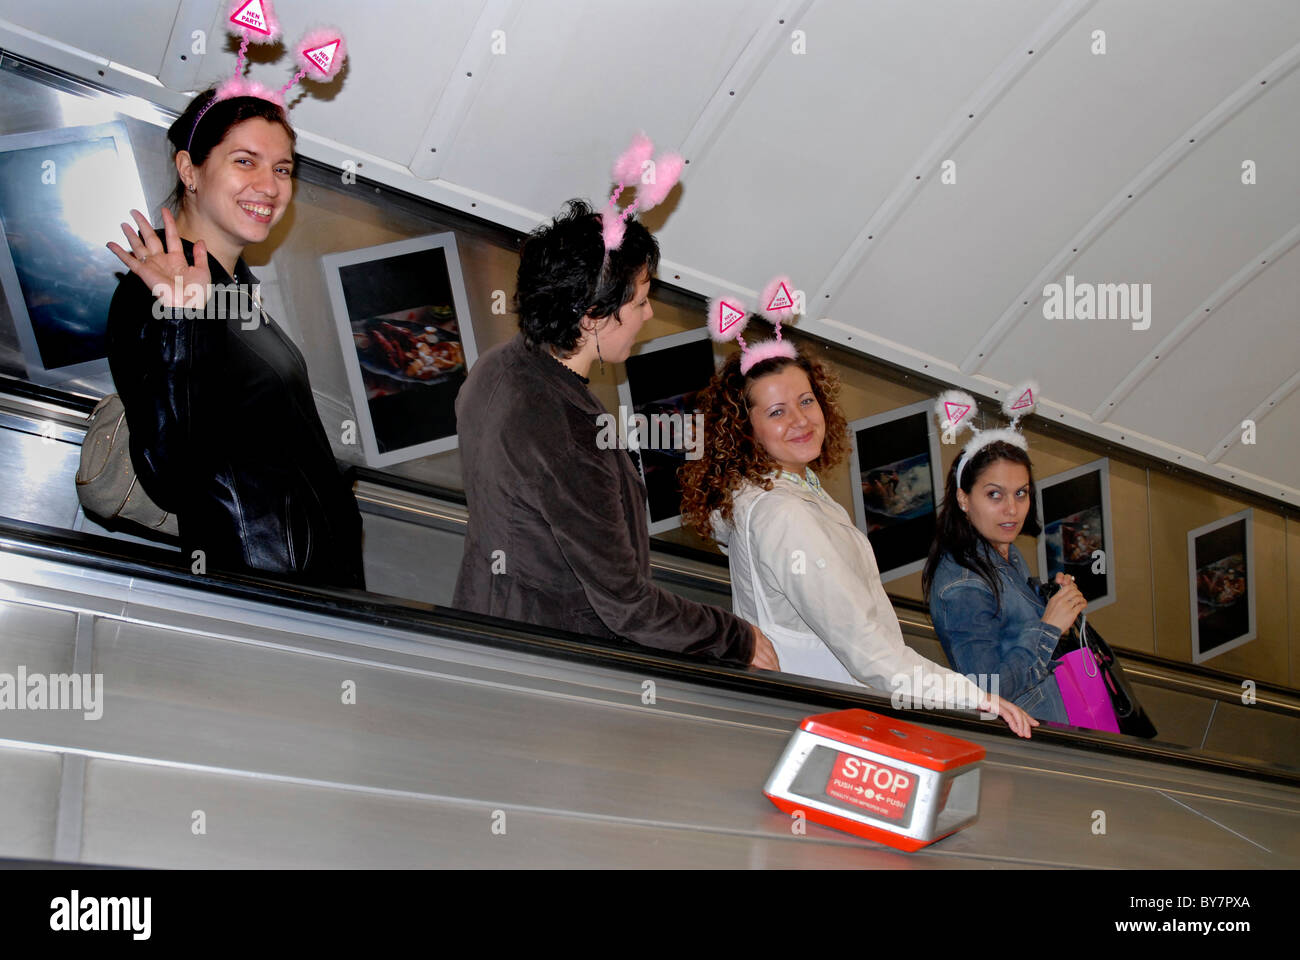 GROUP OF WOMEN ON HEN NIGHT TRAVELING ON TUBE WITH SILLY HEADBANDS - Stock Image